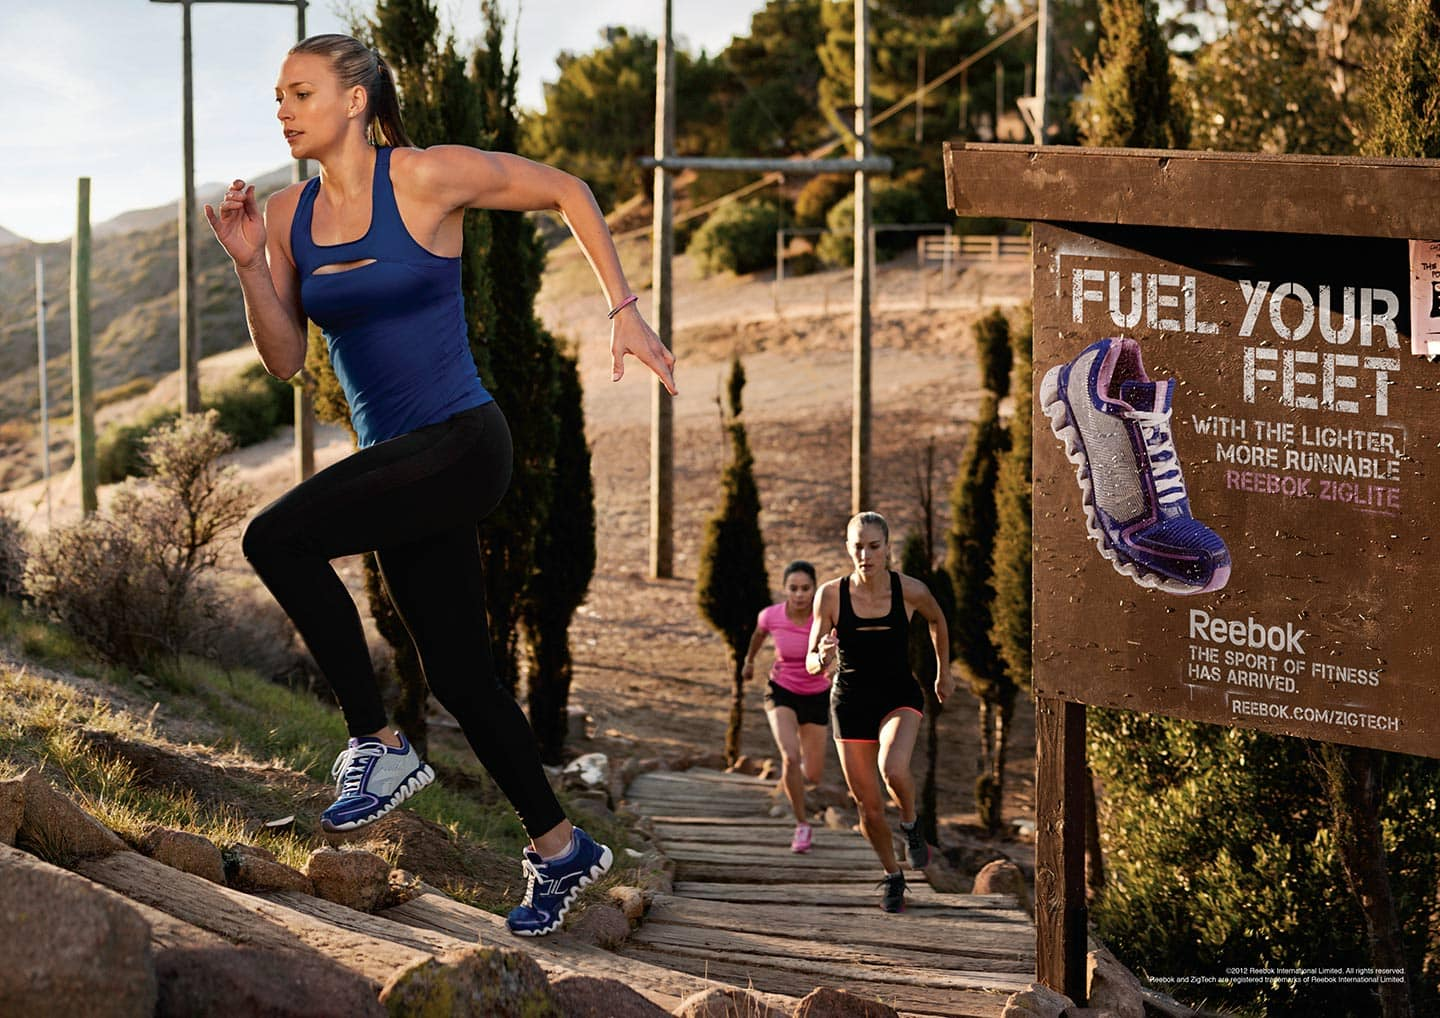 Outdoor Stairs Run Women Reebok Advertisment Fuel Your Feet